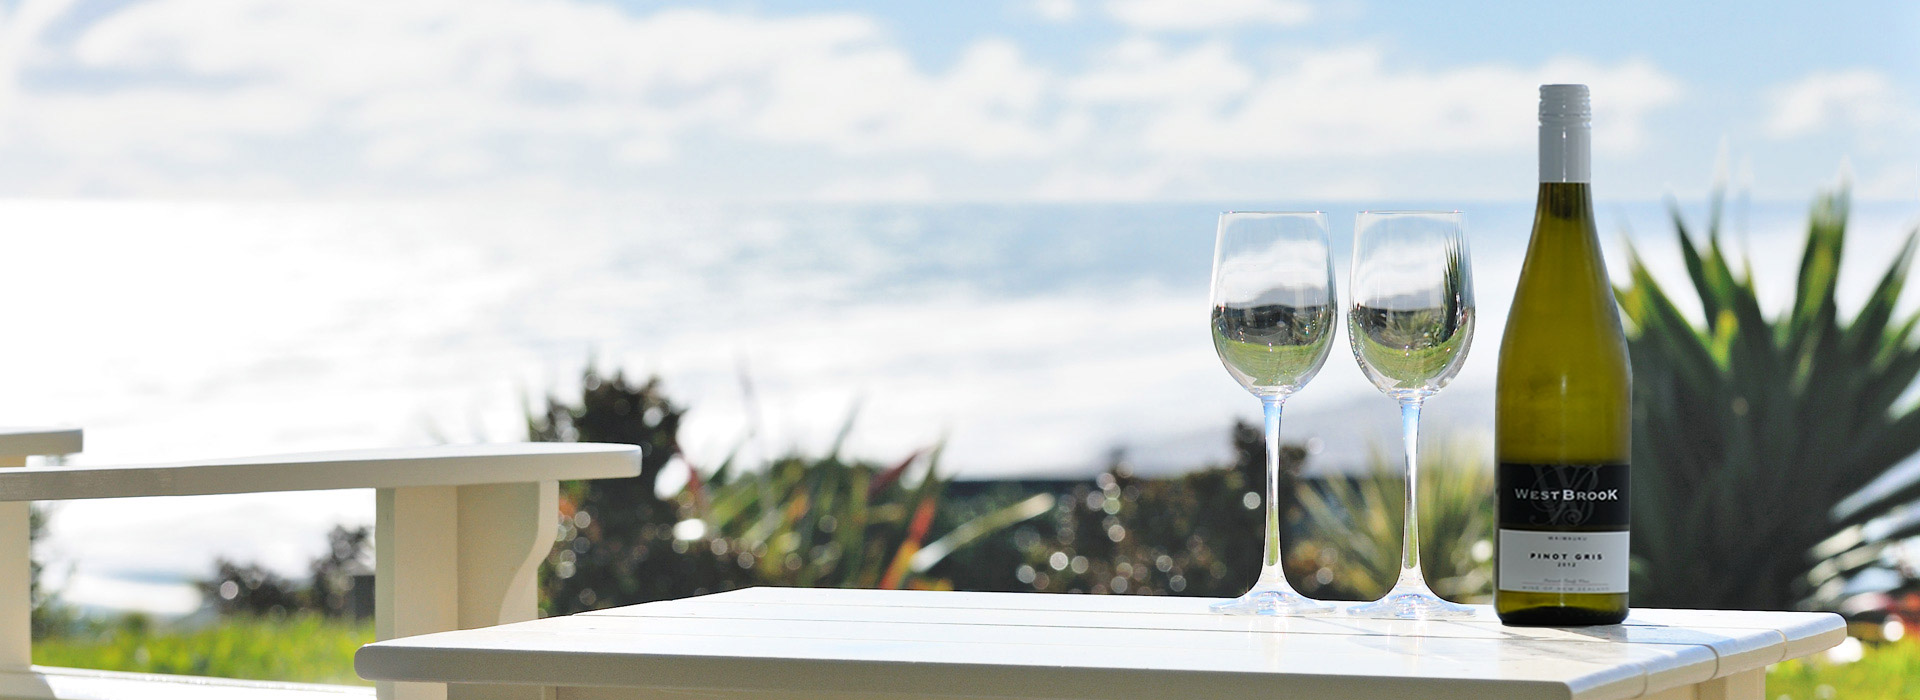 Luxury accommodation Auckland Muriwai black sand beach